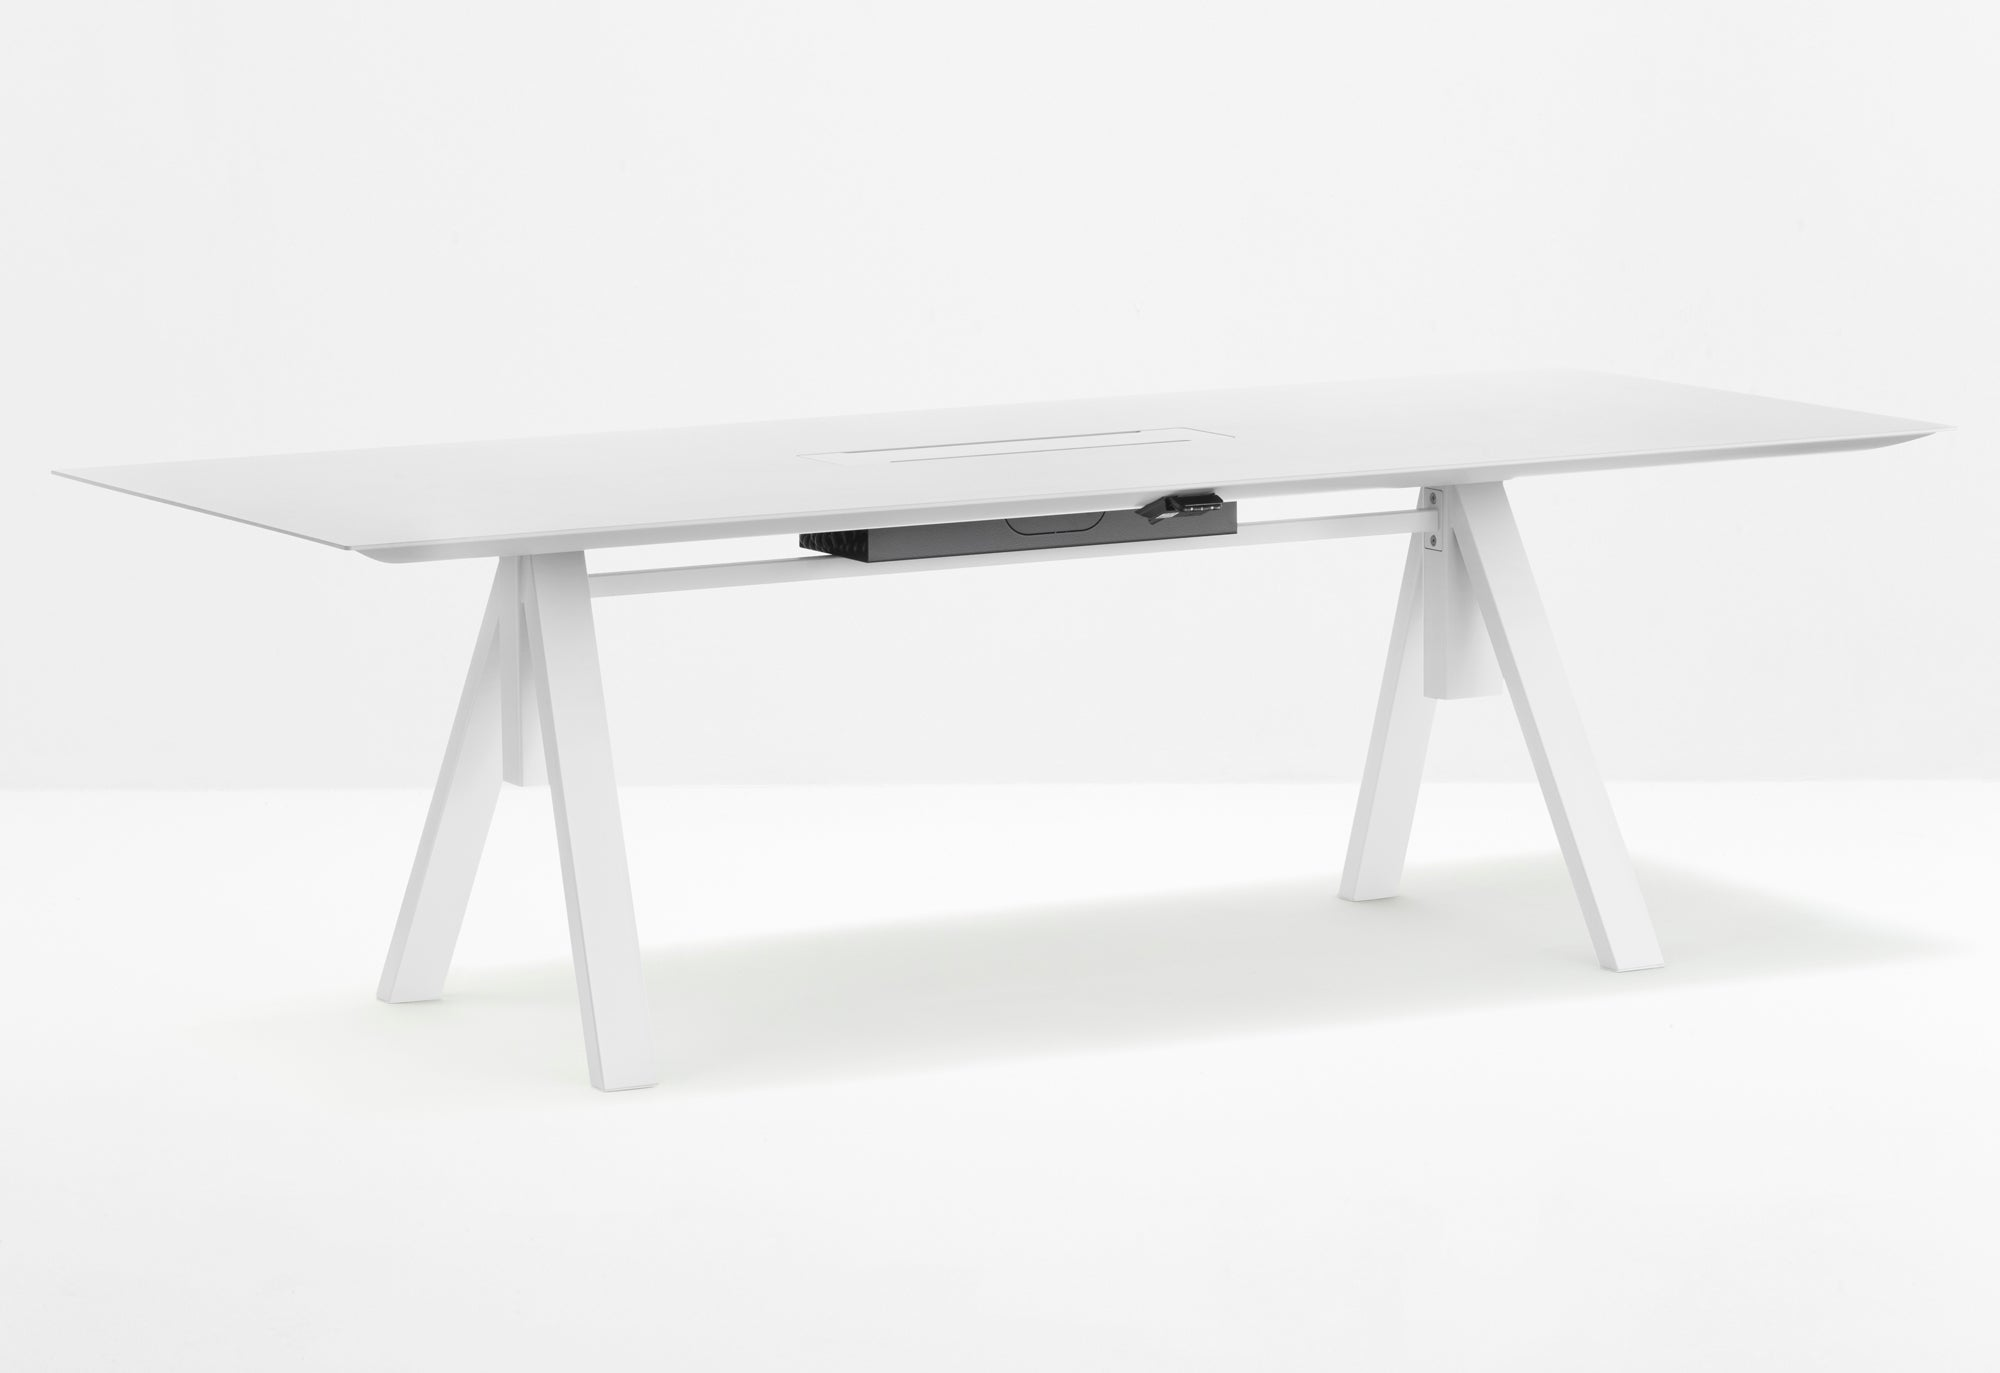 Arki-Table Height Adjustable Desk Table